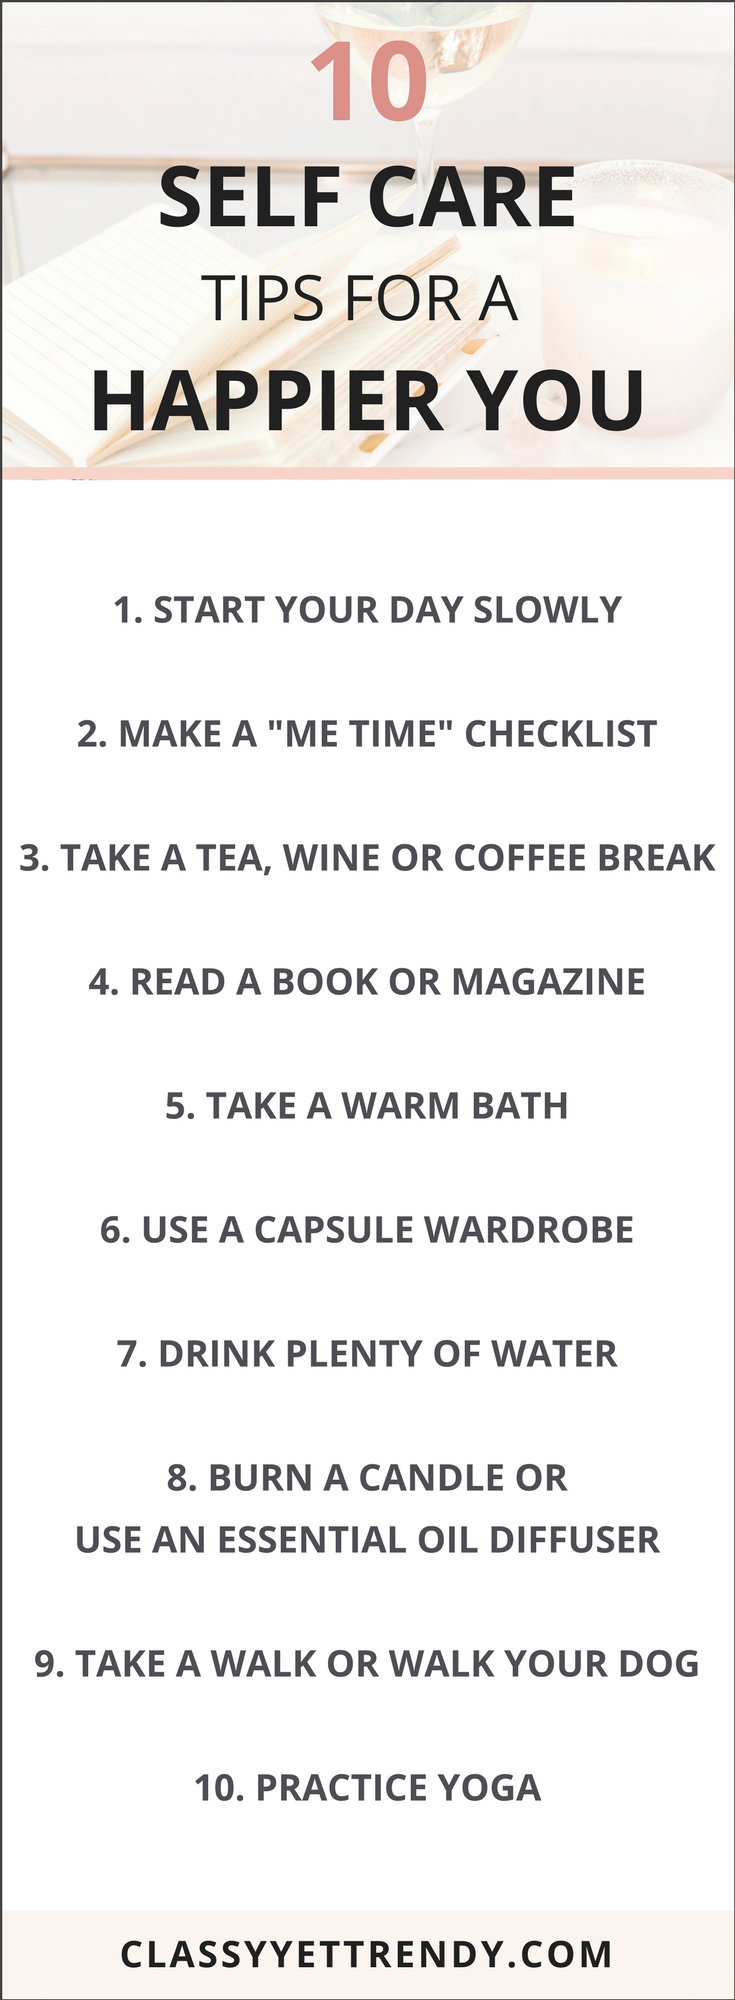 10 Self Care Tips for a Happier You - A few tips to reduce stress, enjoy your day and improve your life!